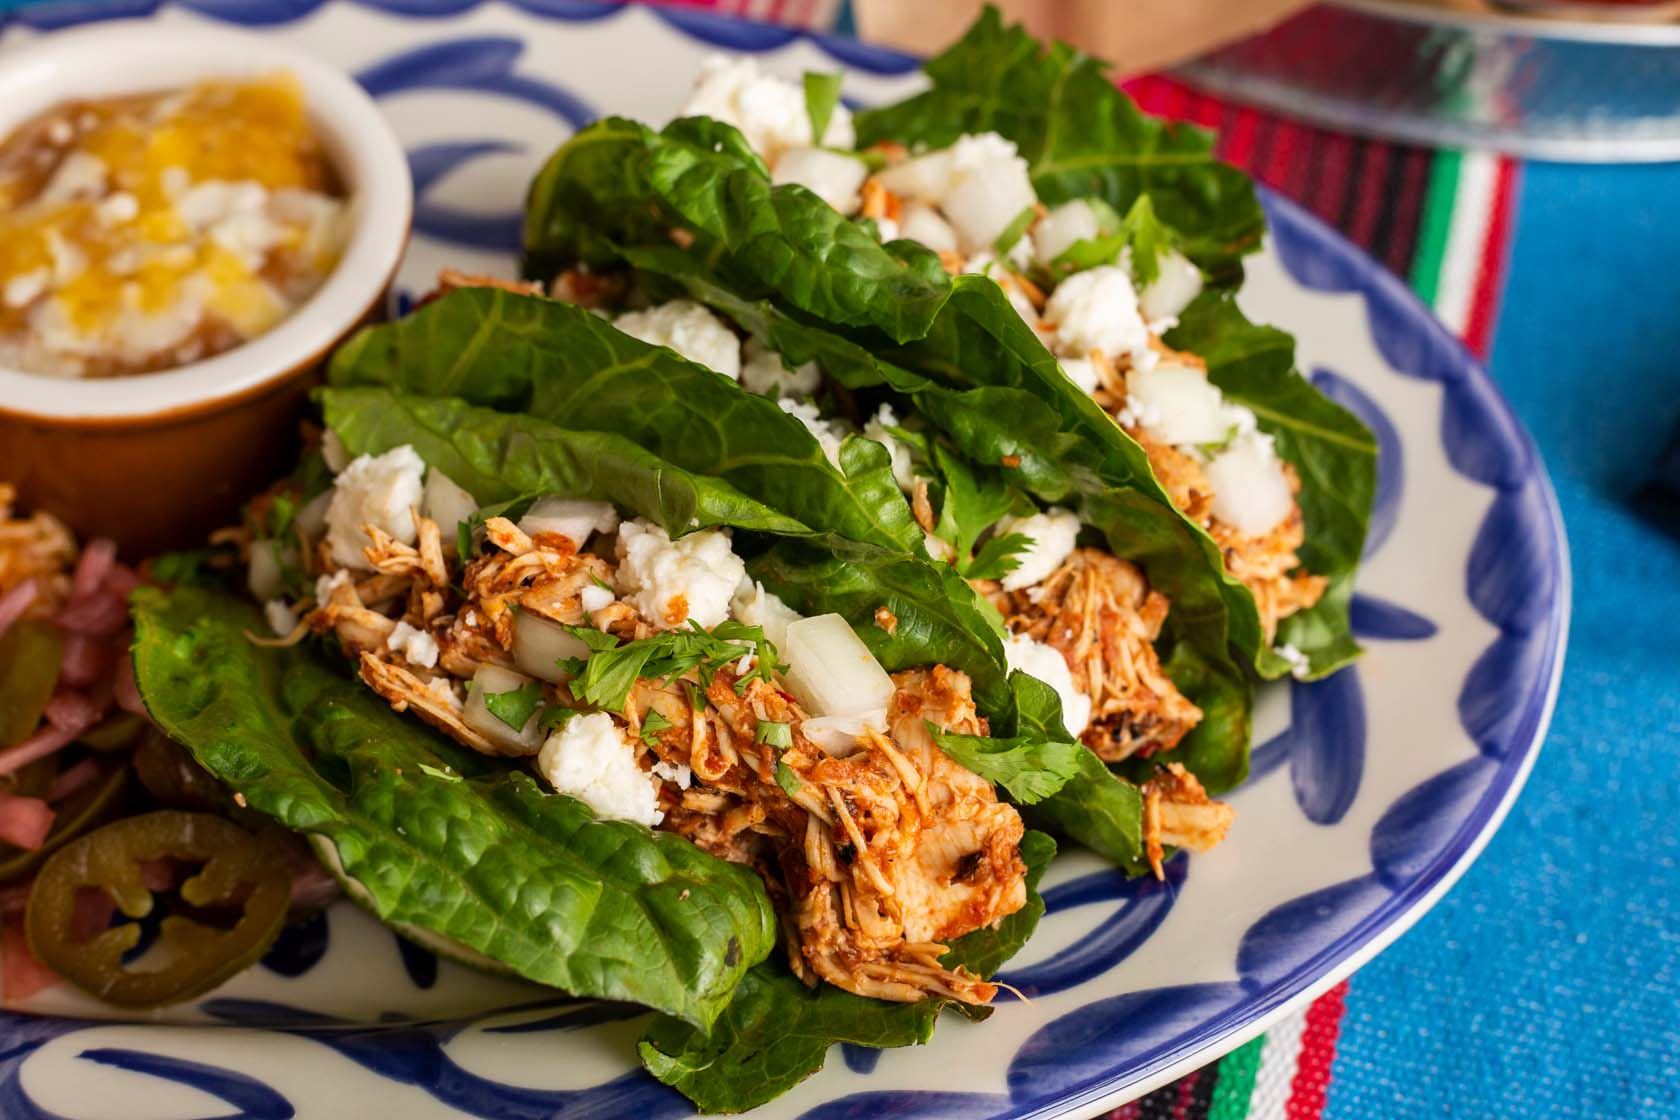 Three gluten-free friendly tacos served with lettuce wraps as tortillas and chicken Tinga filling.